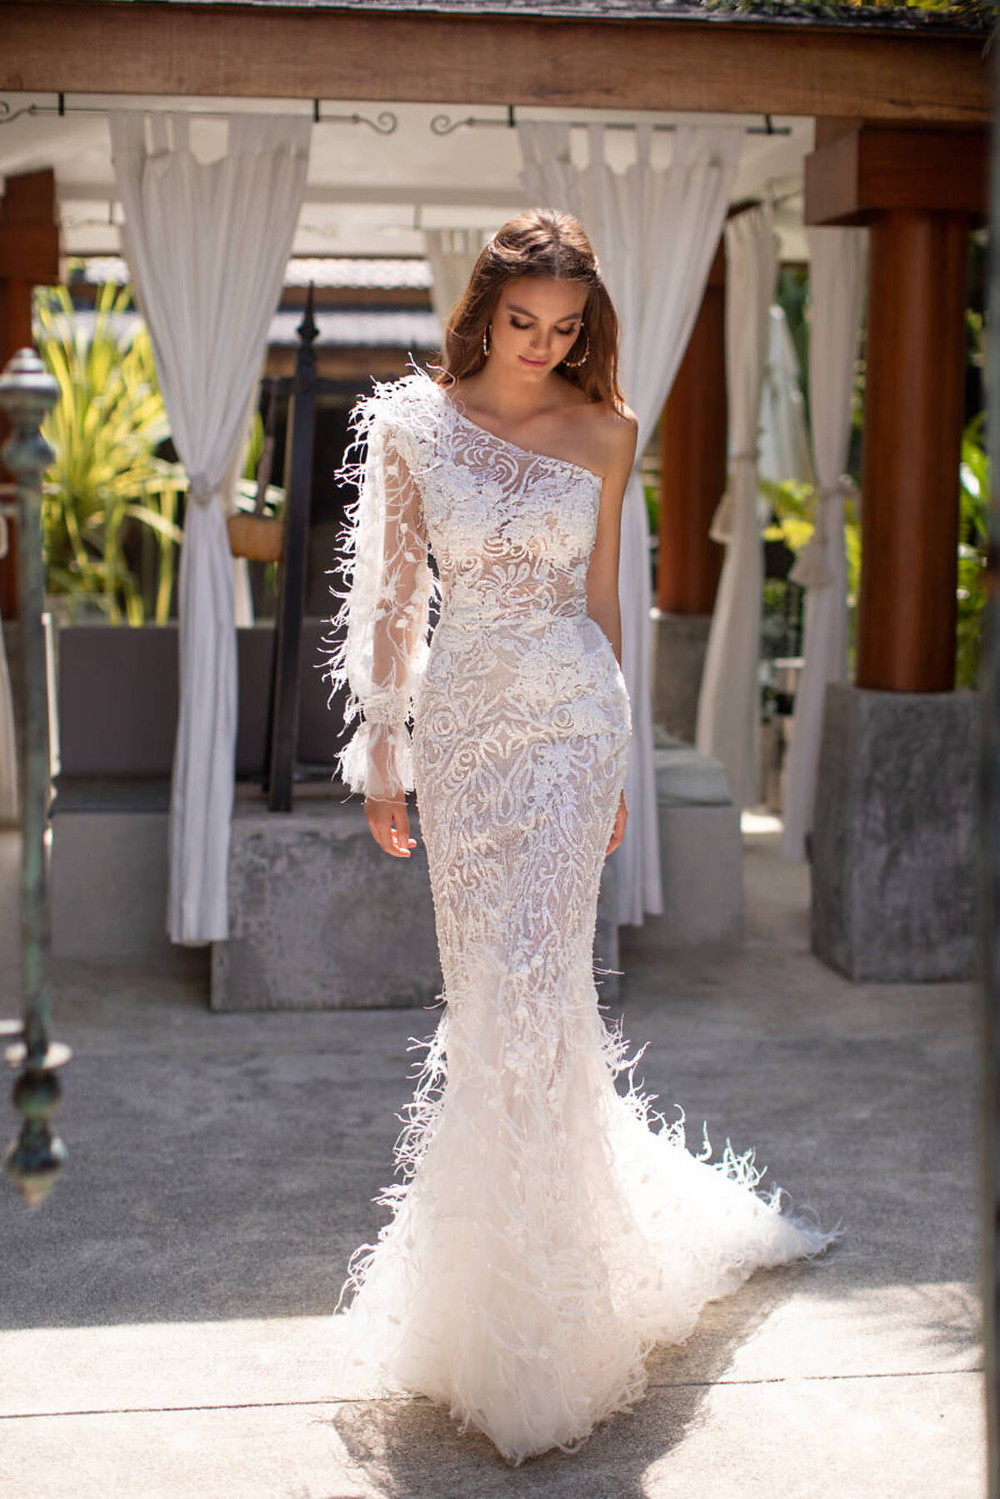 A one shoulder mermaid wedding dress with feathers and a floral print